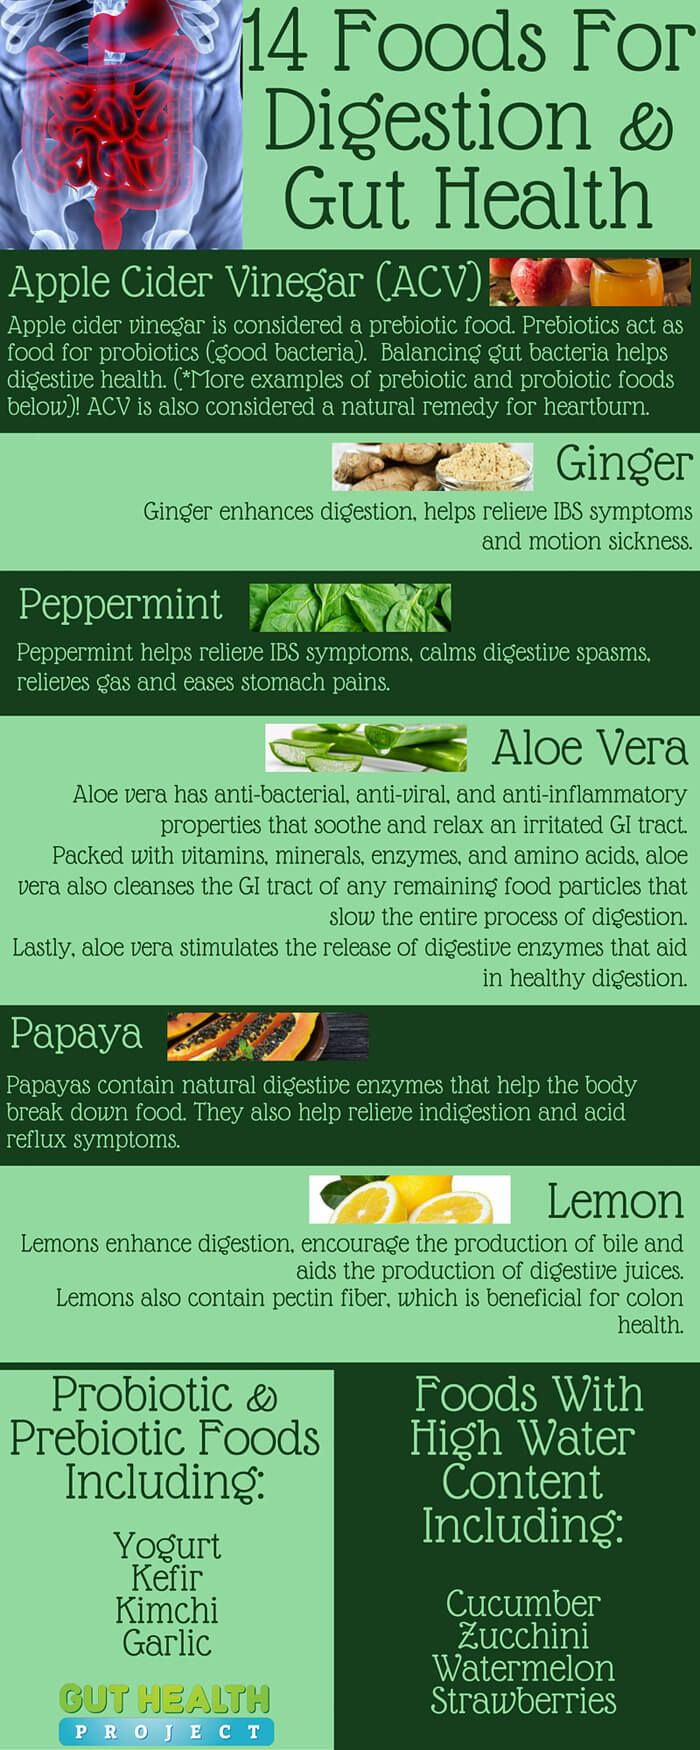 Certain fruits, vegetables and herbs can promote good digestion & gut health. See 14 foods for digestion, along with a list of food types…